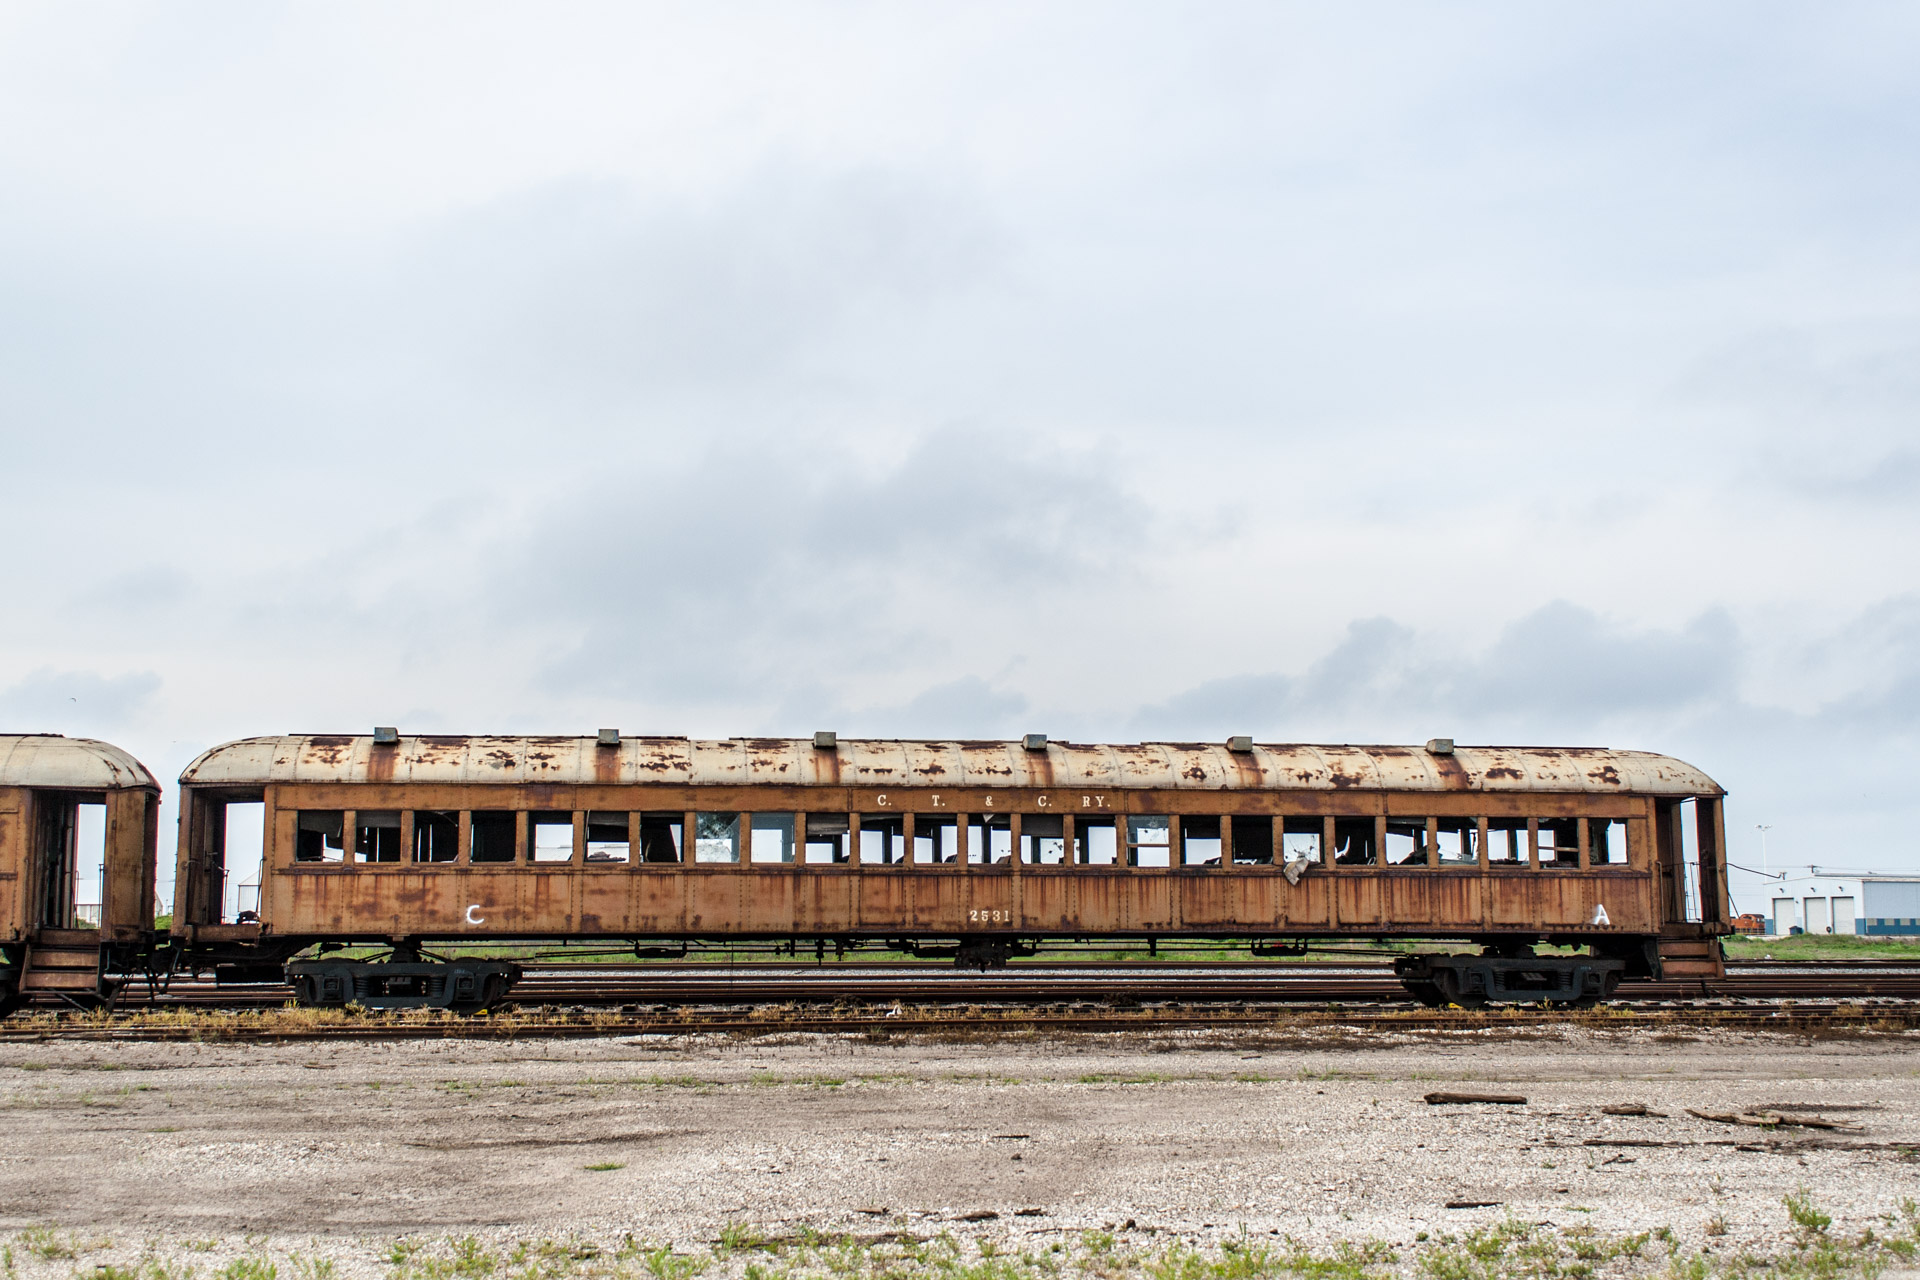 Galveston, Texas - Last Stop Passenger Train Car (front far right)